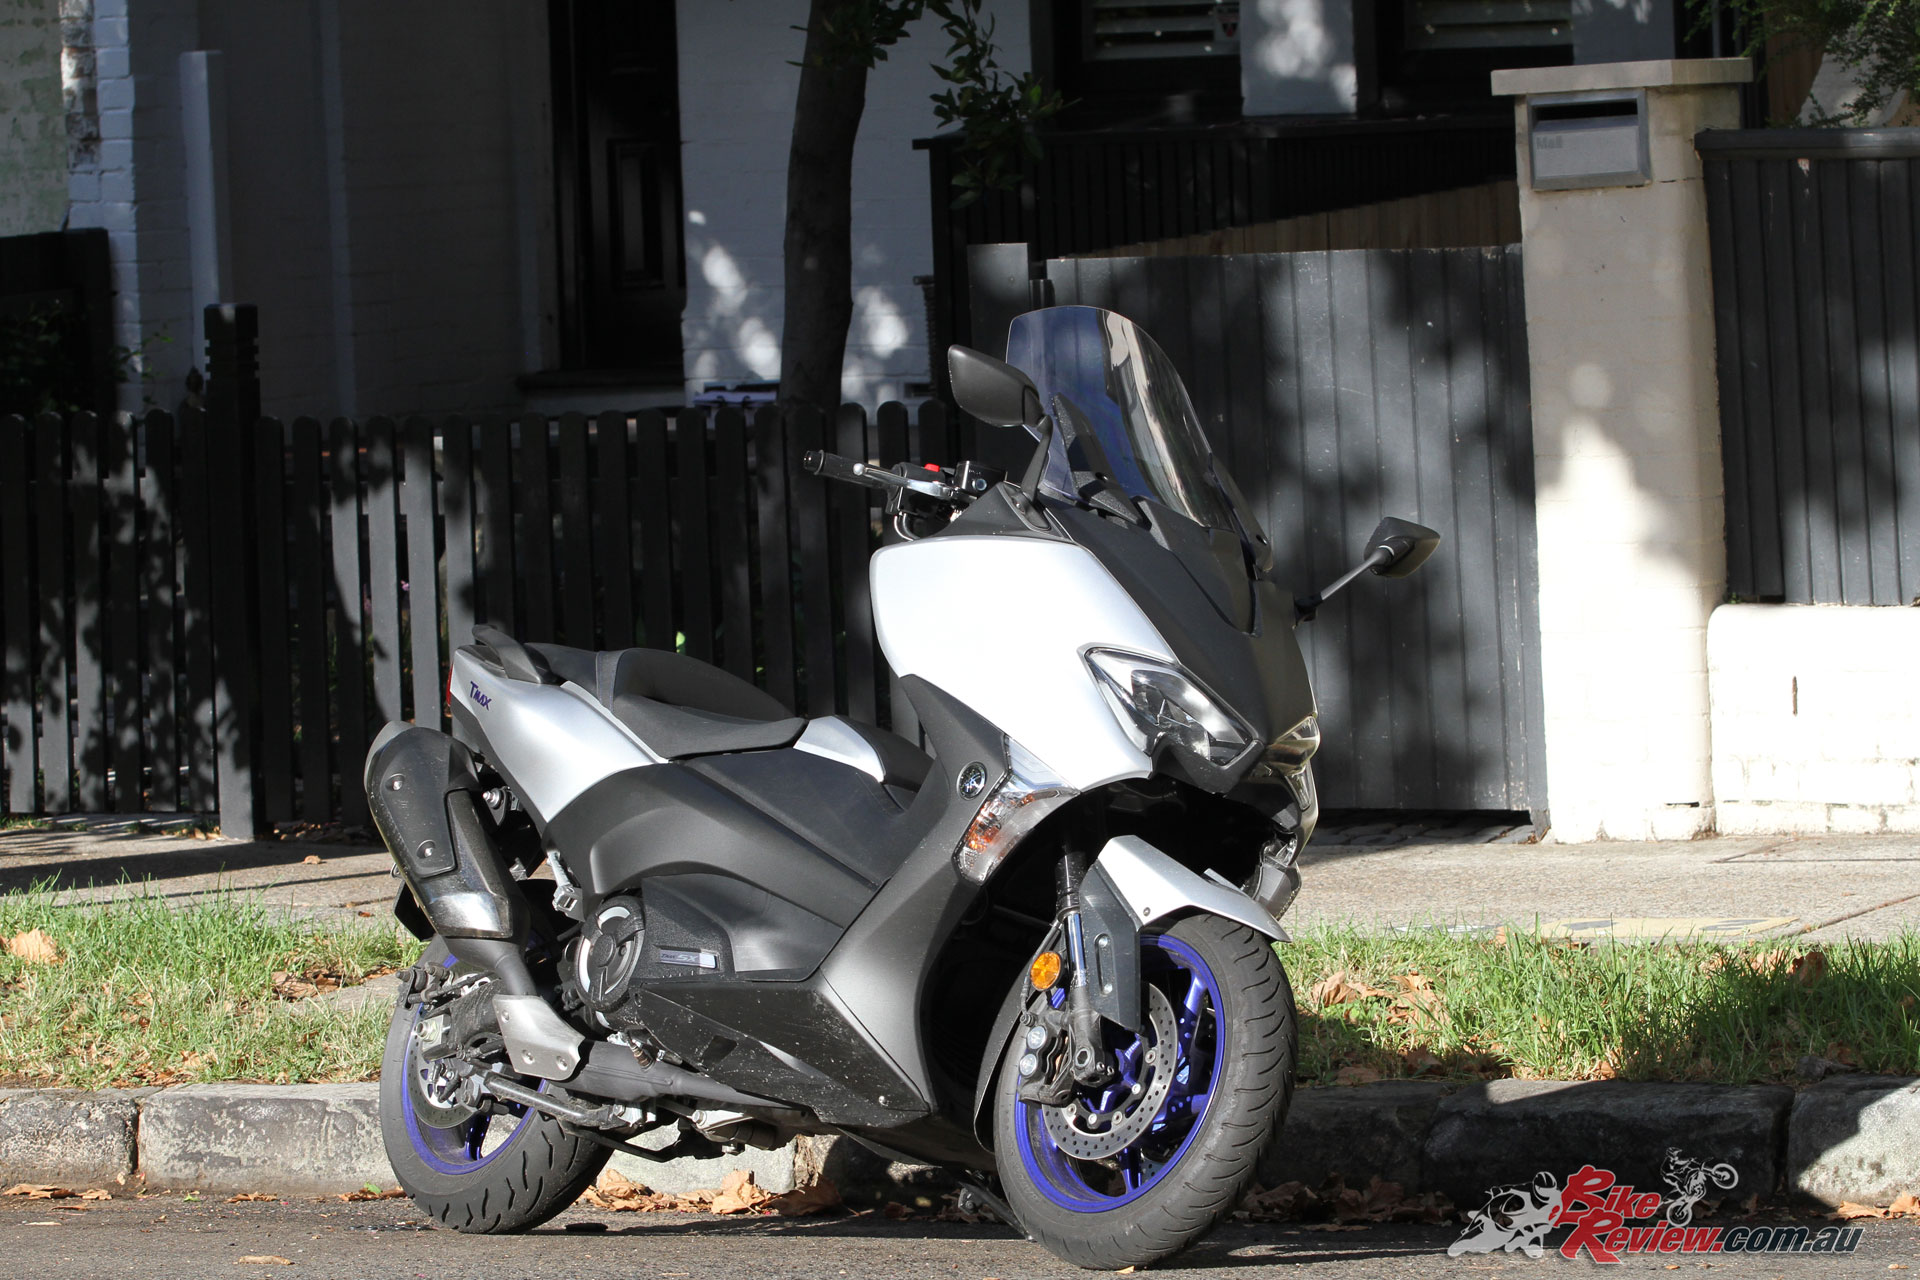 Yamaha's TMax 530 SX is their maxi-scooter, a high performance offering capable of touring